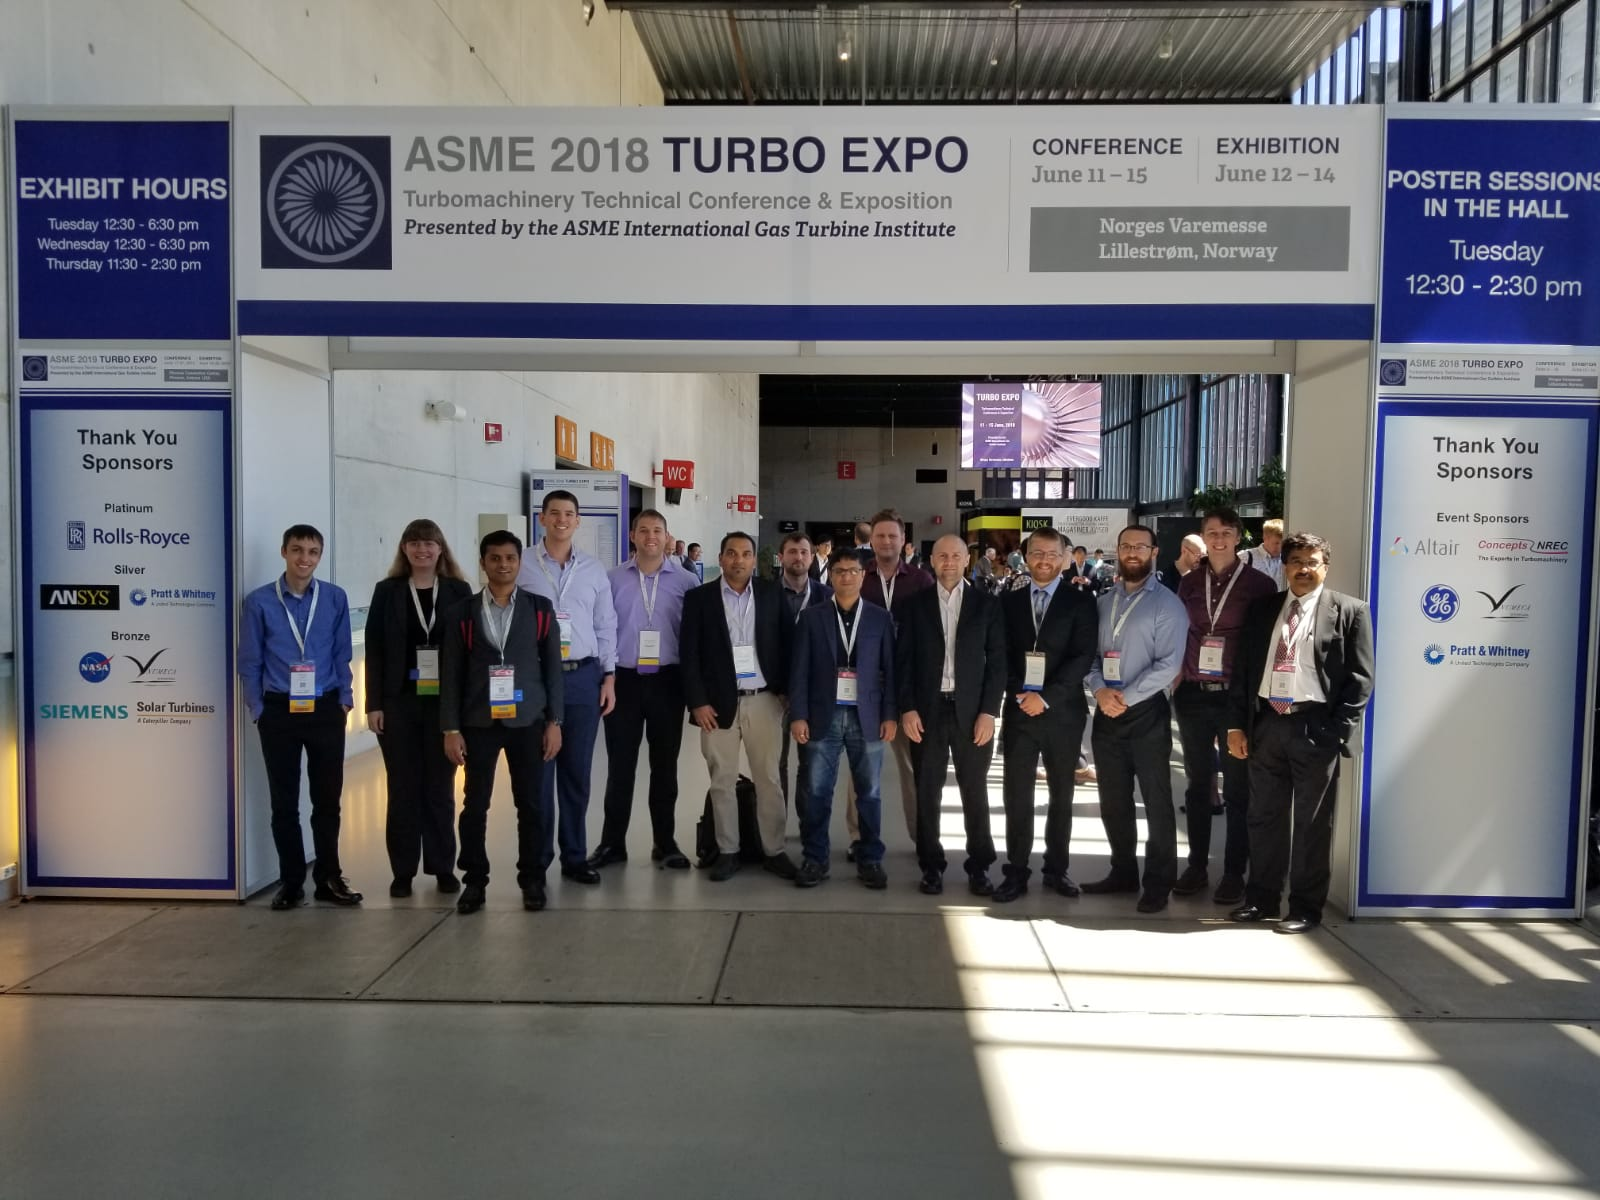 Presentation] ASME Turbomachinery Technical Conference and